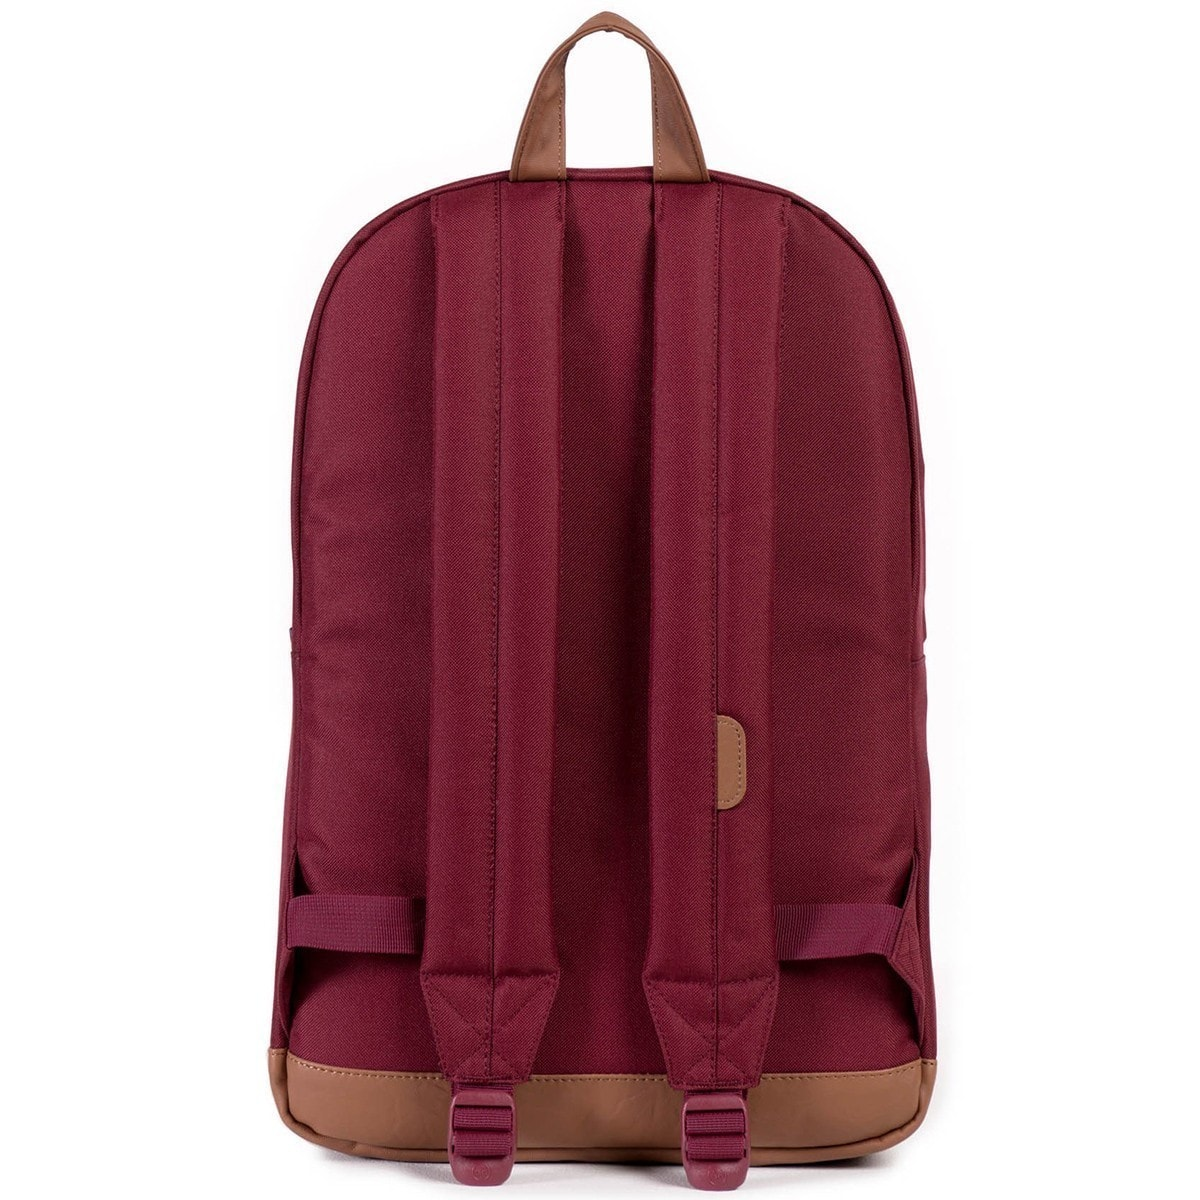 Рюкзак Herschel Pop Quiz WINDSOR WINE/TAN SYNTHETIC LEATHER